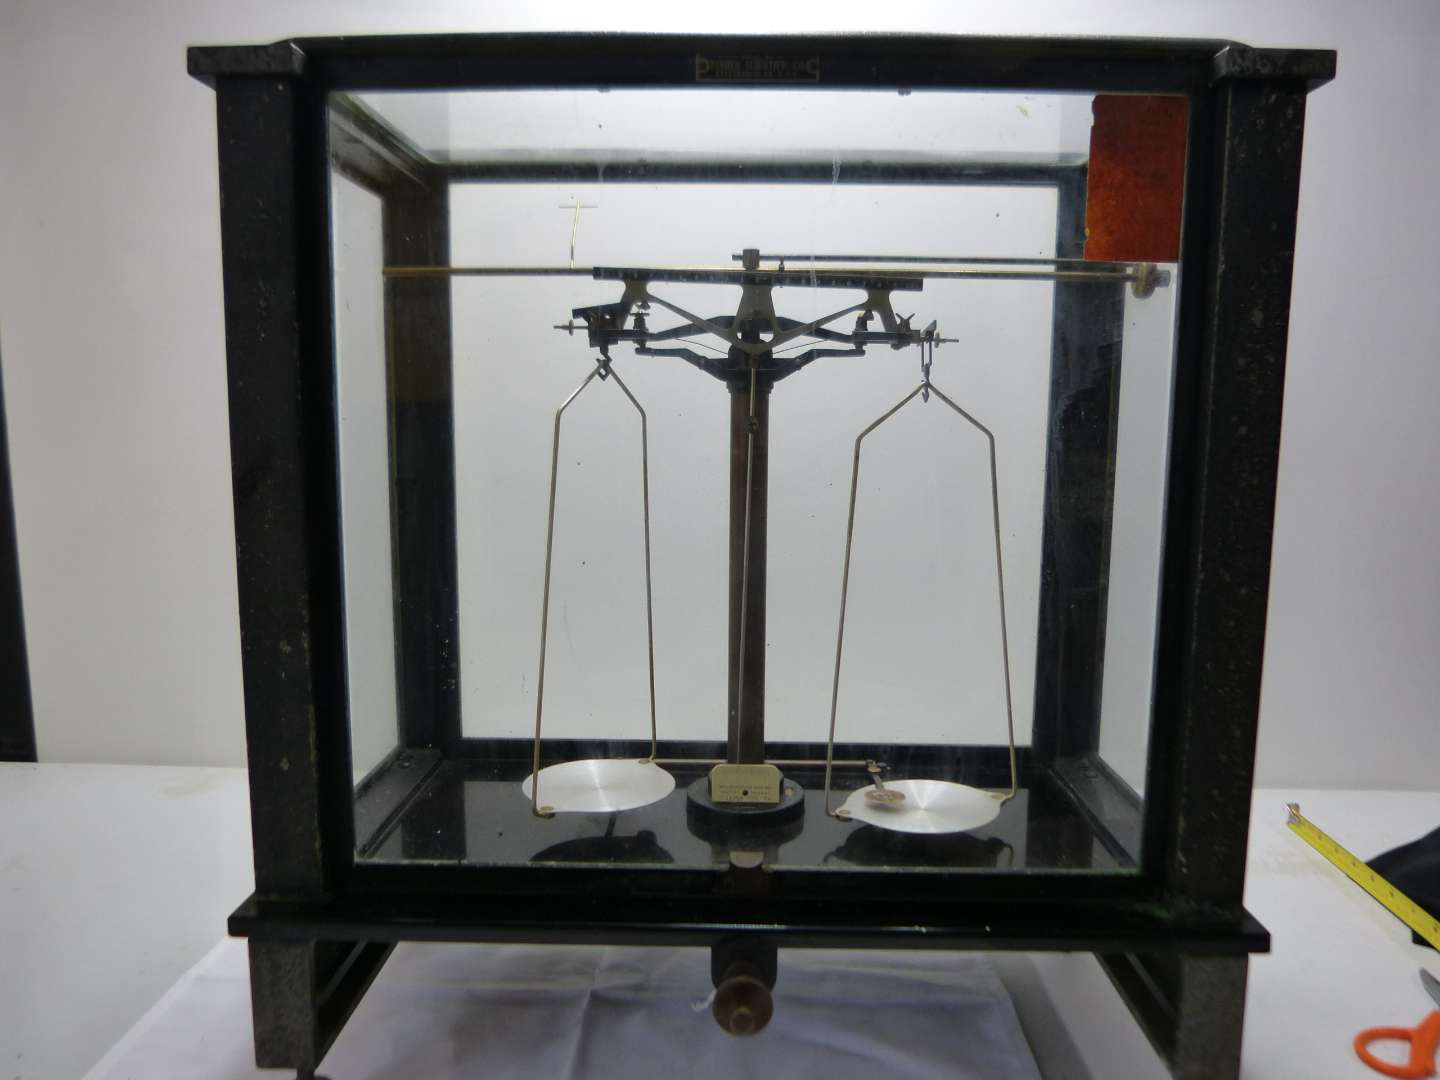 Lot # 2  Antique Fisher Scientific scale.  Metal framed and glass all around (does show some pitting on the frame)